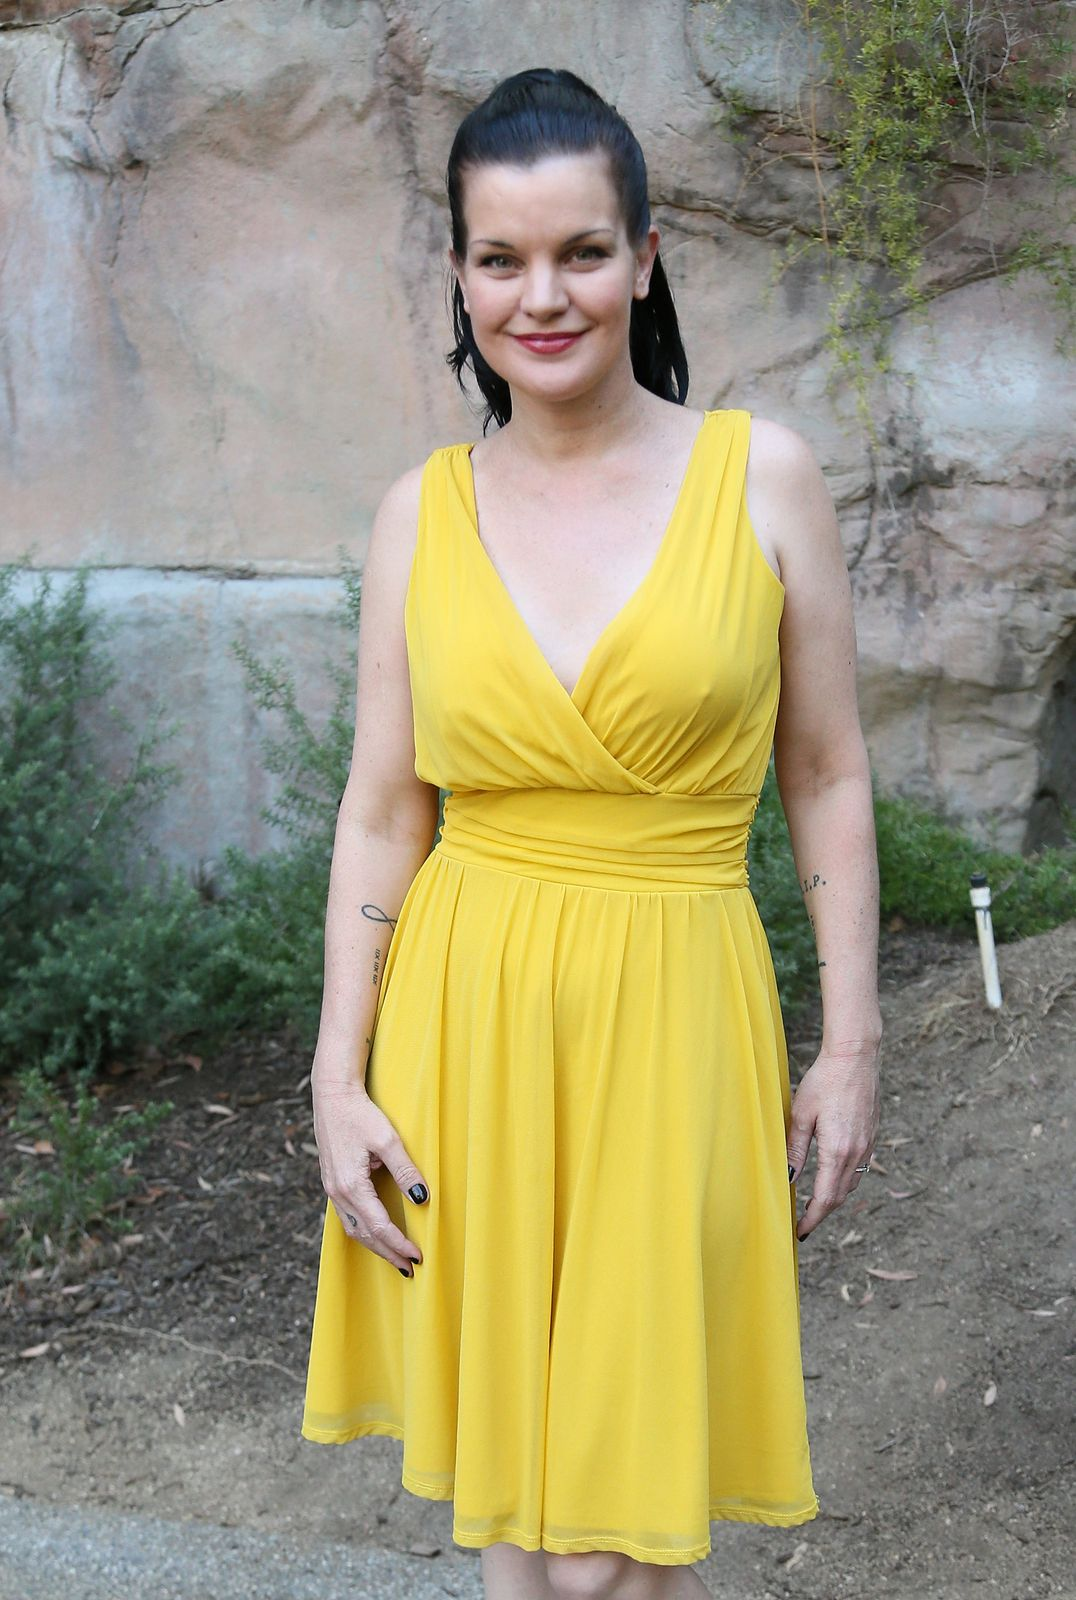 Pauley Perrette atthe Greater Los Angeles Zoo Association's (GLAZA) 45th Annual Beastly Ball at the Los Angeles Zoo on June 20, 2015, in California | Photo:David Livingston/Getty Images